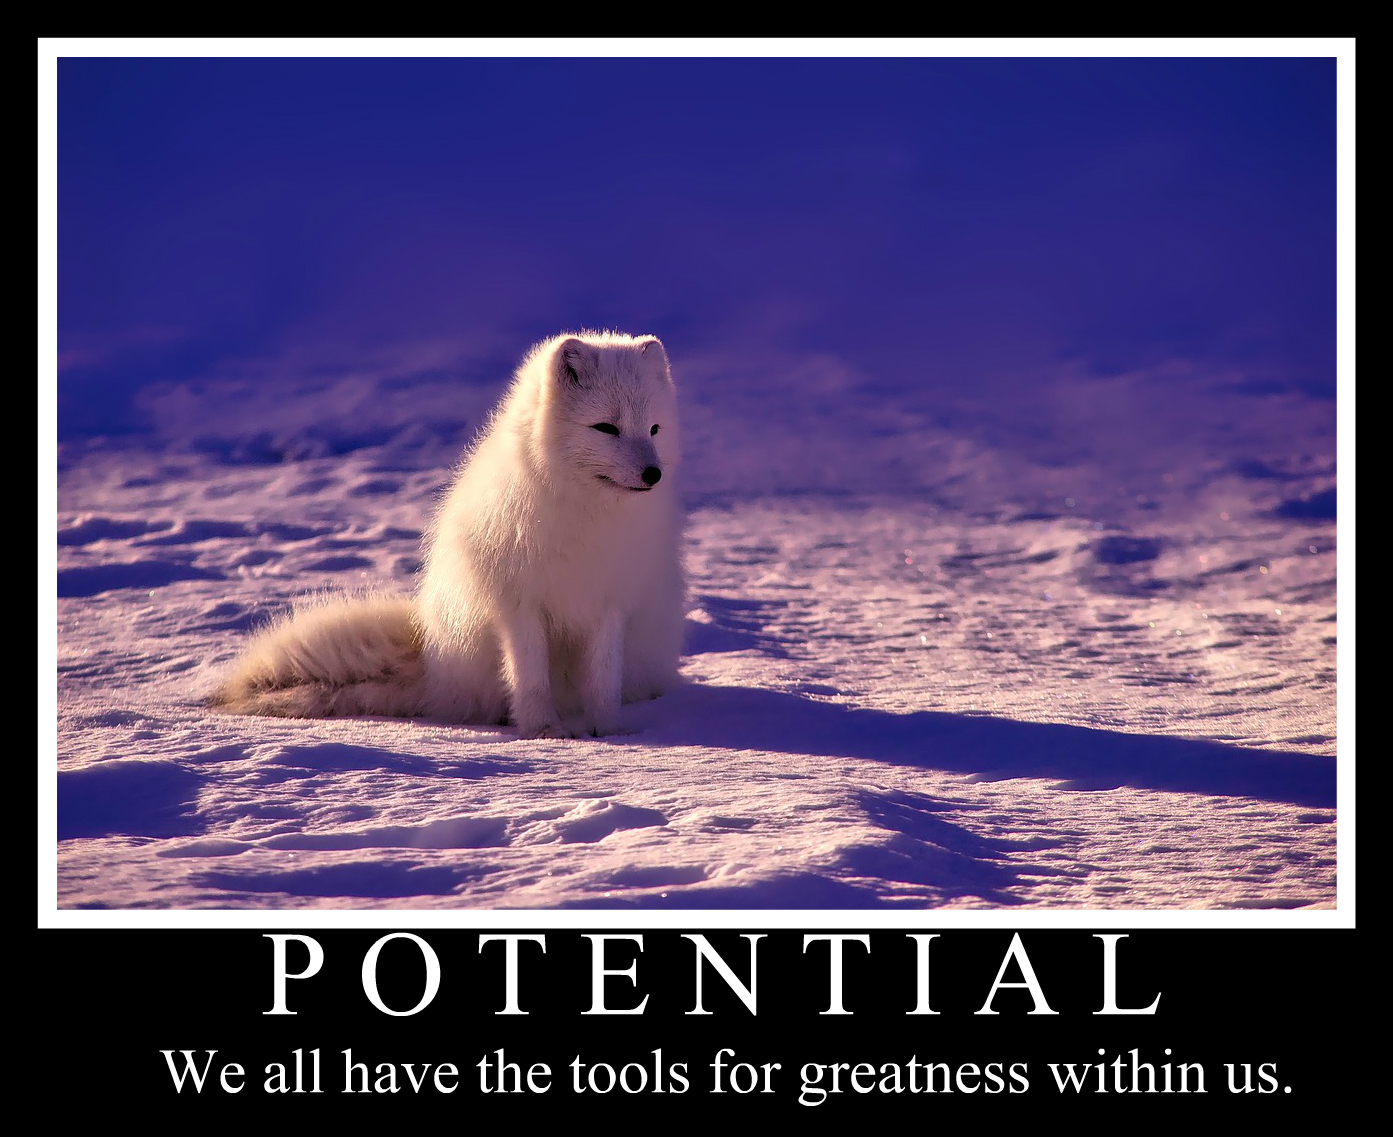 how to make motivational posters in ipiccy   ipiccy photo editor blog ipiccy photo editor blog